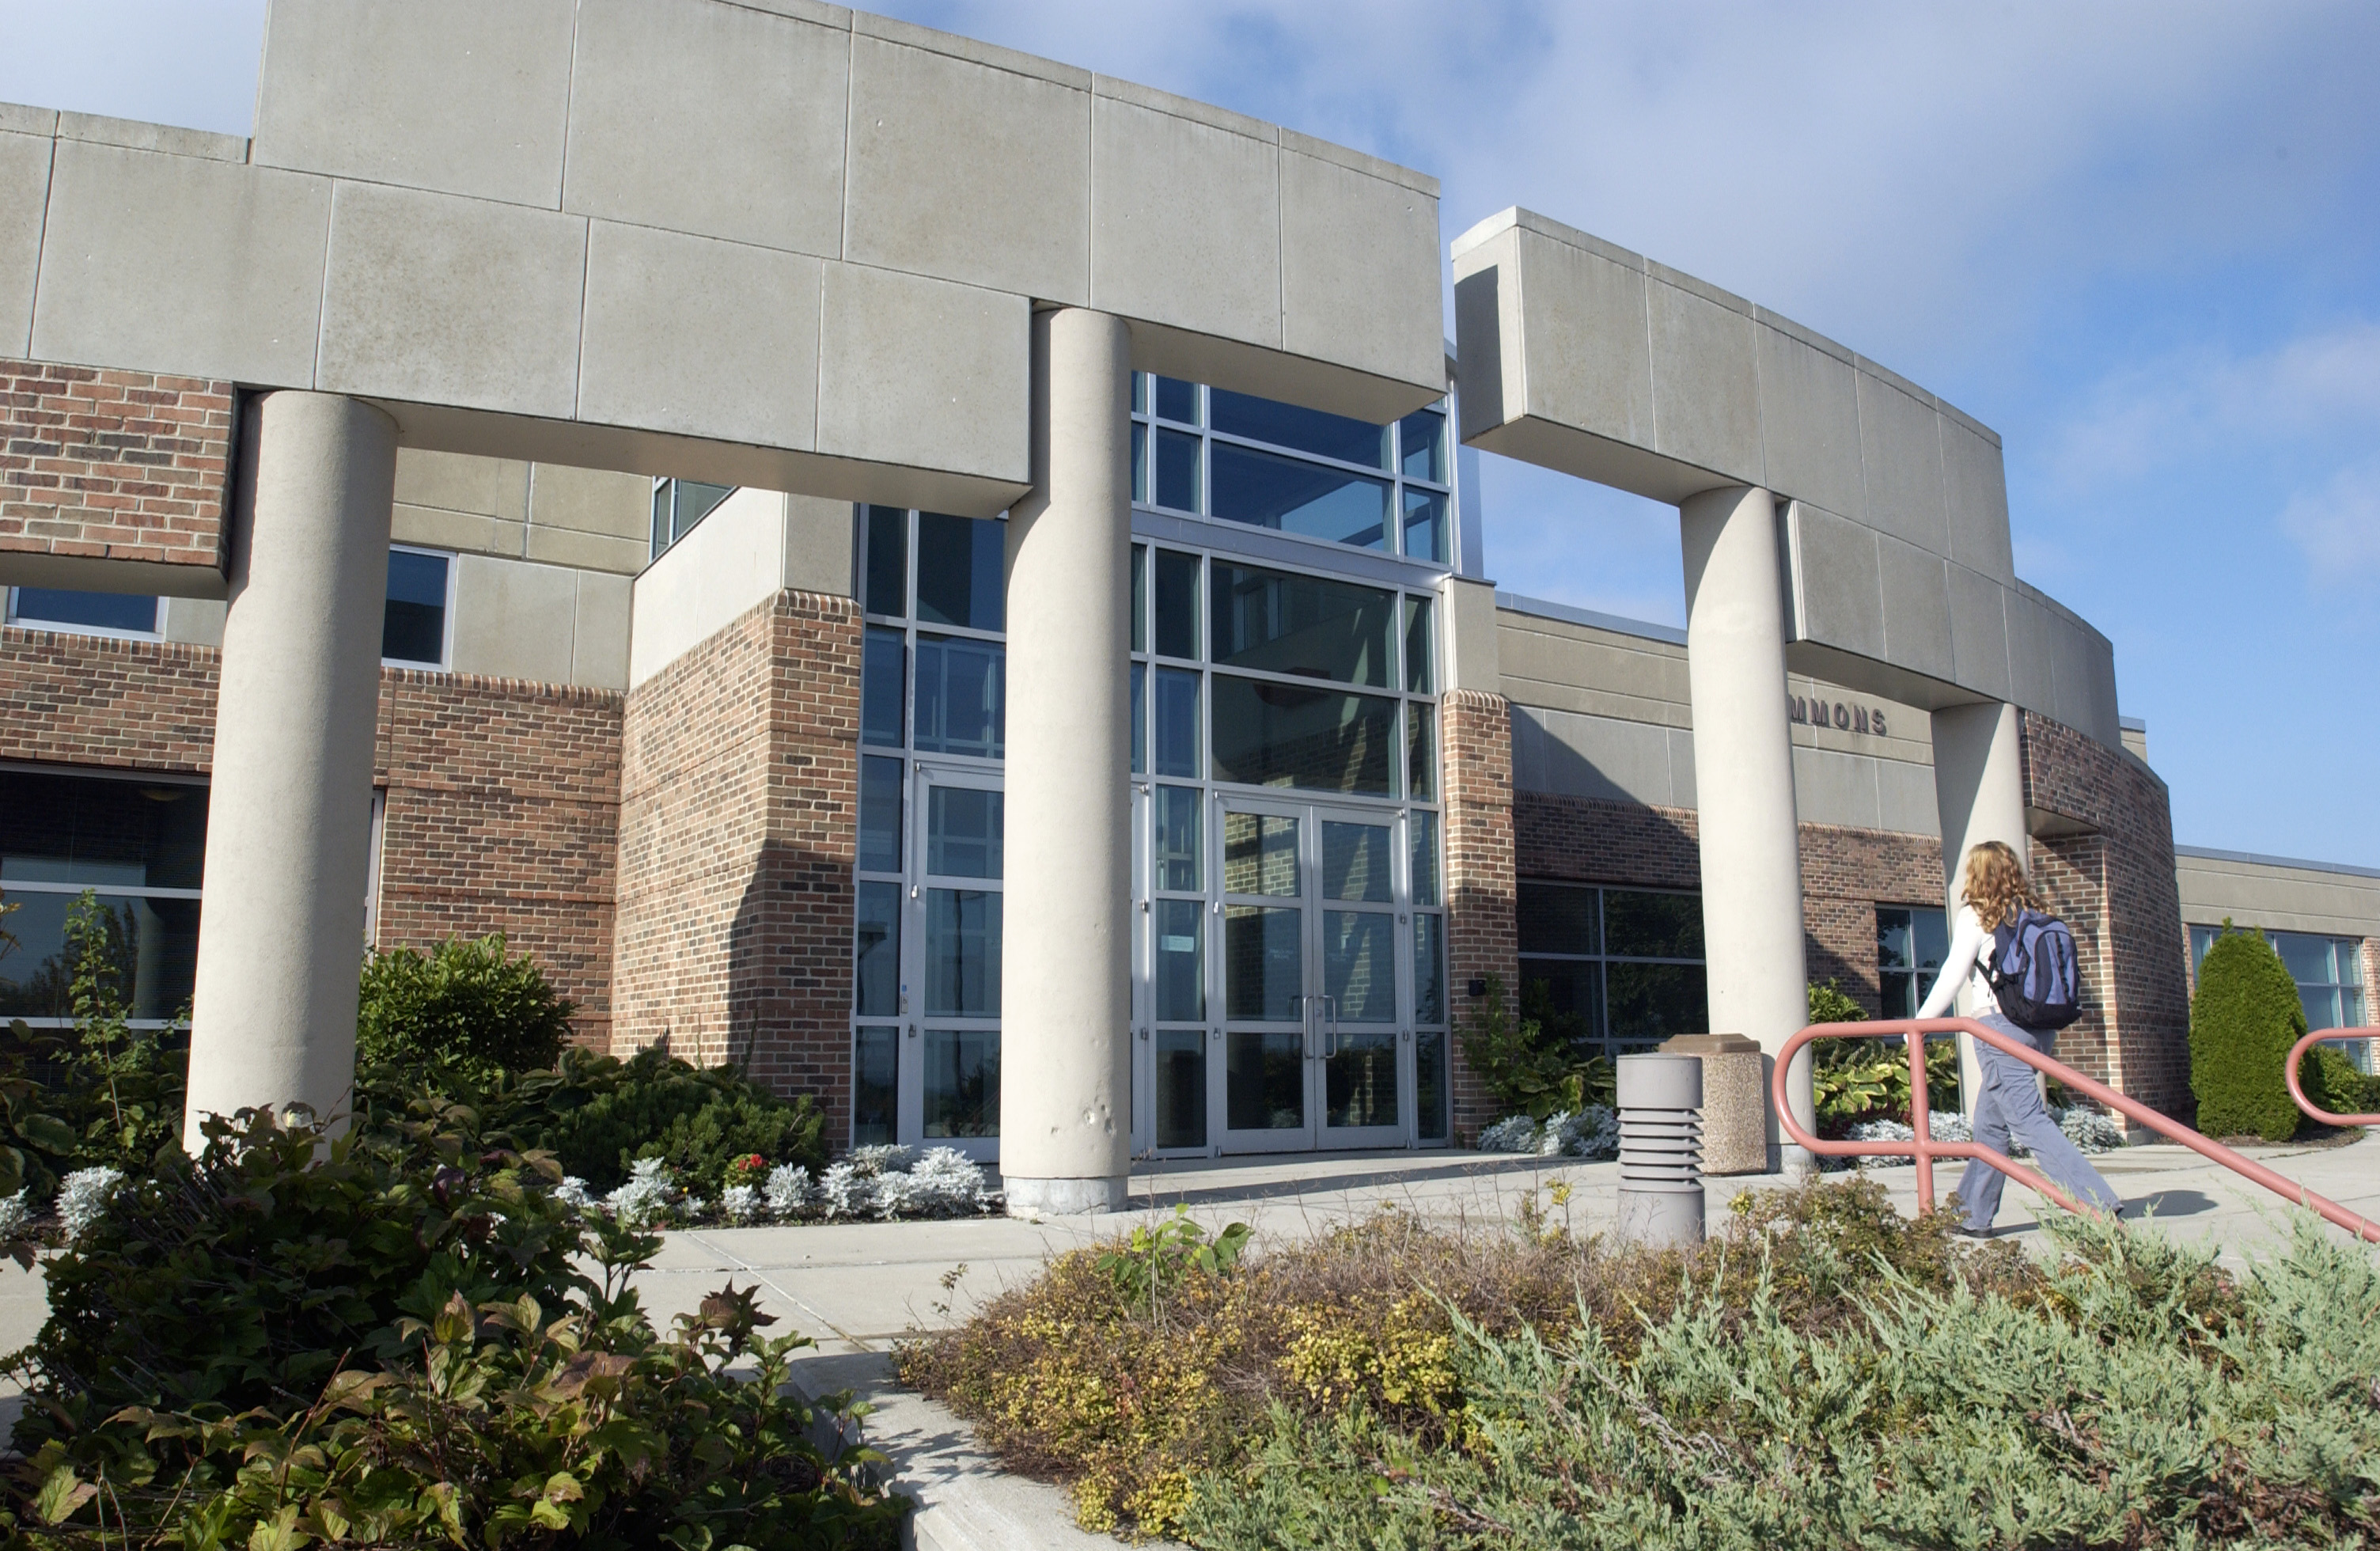 Founded in the 1960s as the University of Wisconsin-Waukesha, the two-year college campus is now part of the University of Wisconsin-Milwaukee.